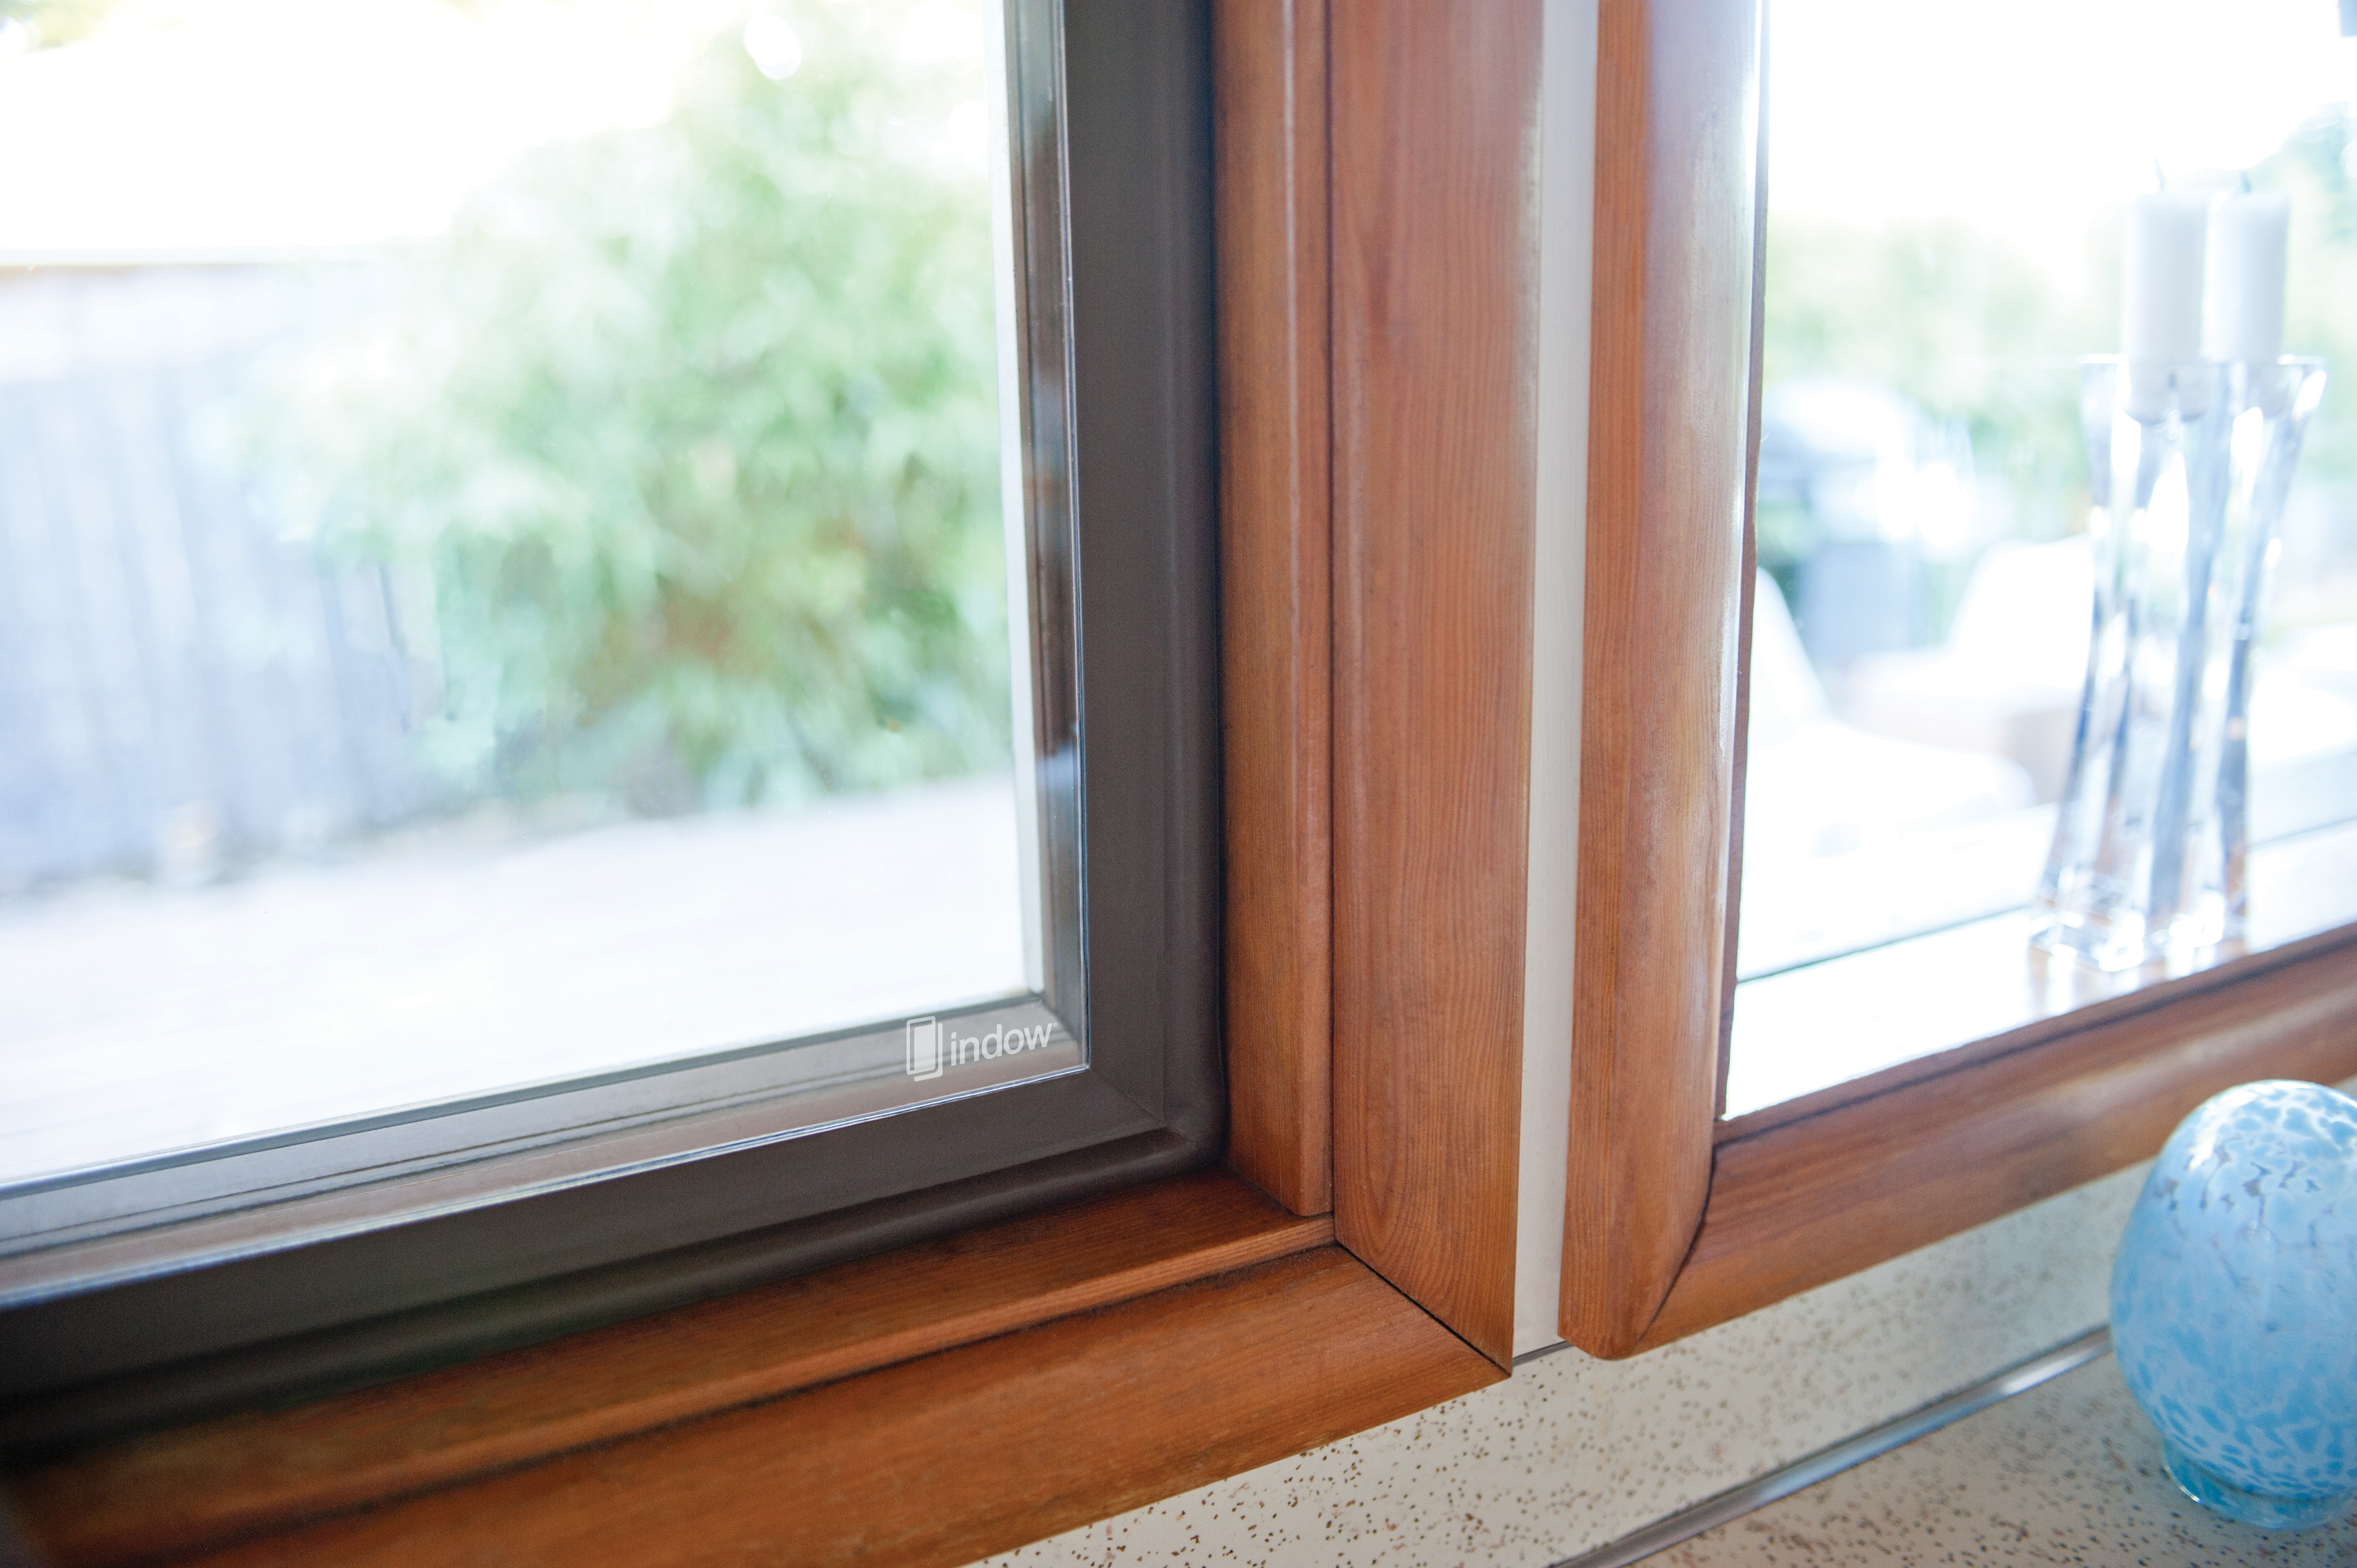 with improve photo windows interior system these experience have anyone panels to discussion storm heating